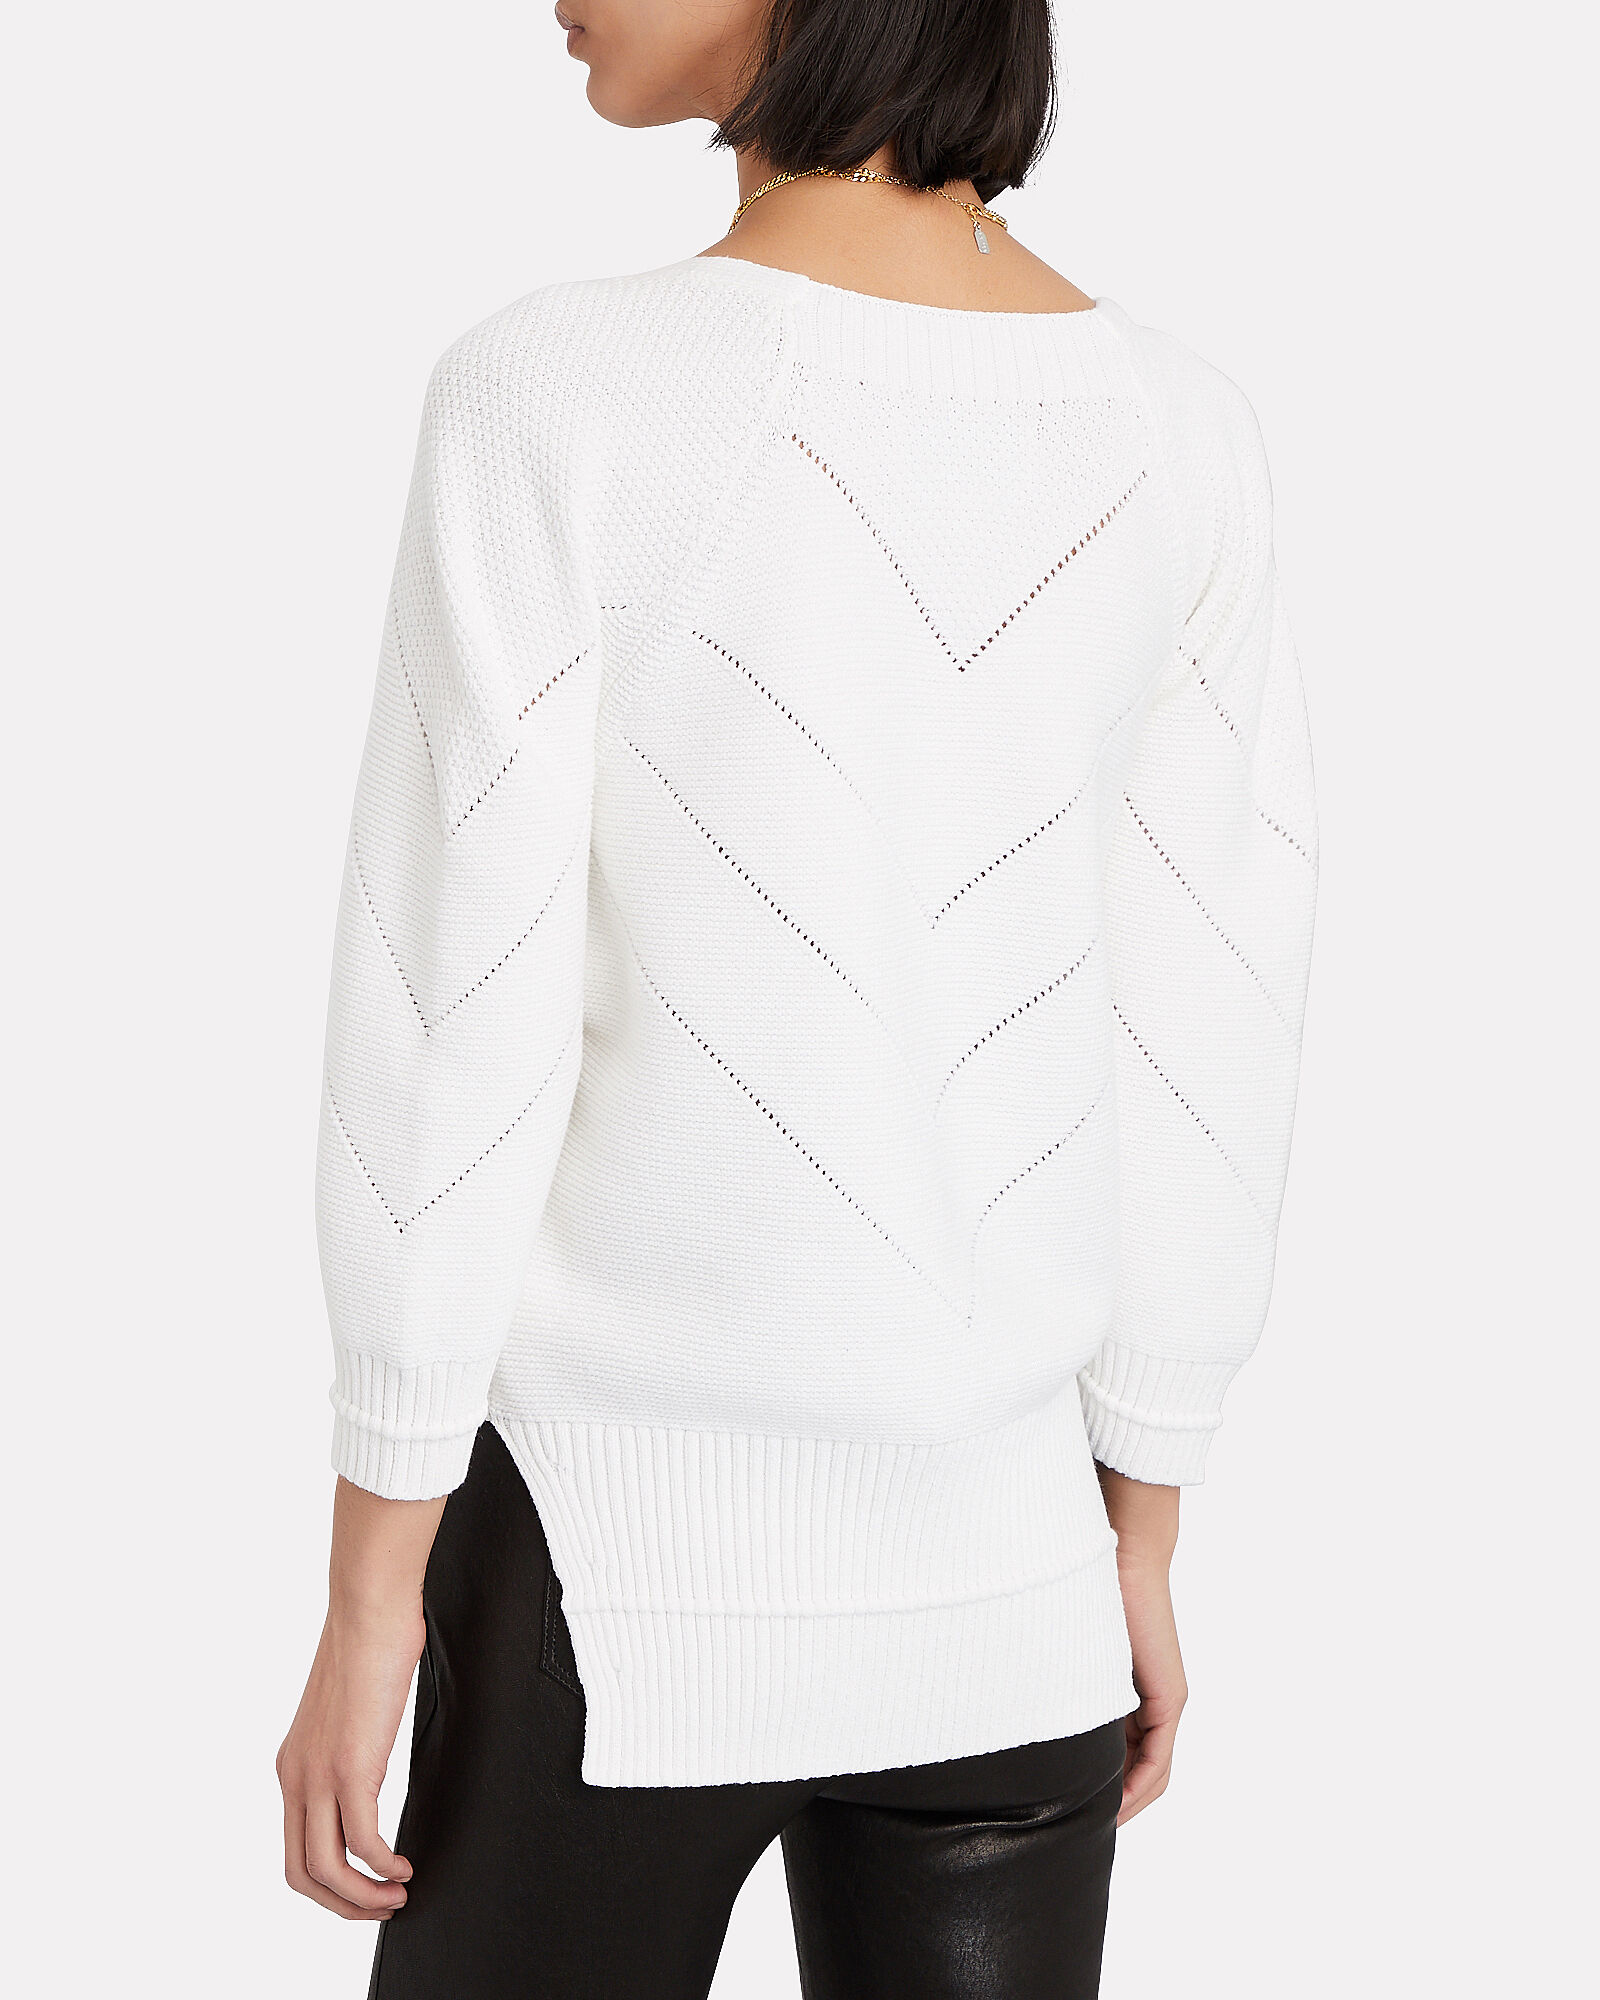 Decker V-Neck Cotton-Blend Sweater, WHITE, hi-res